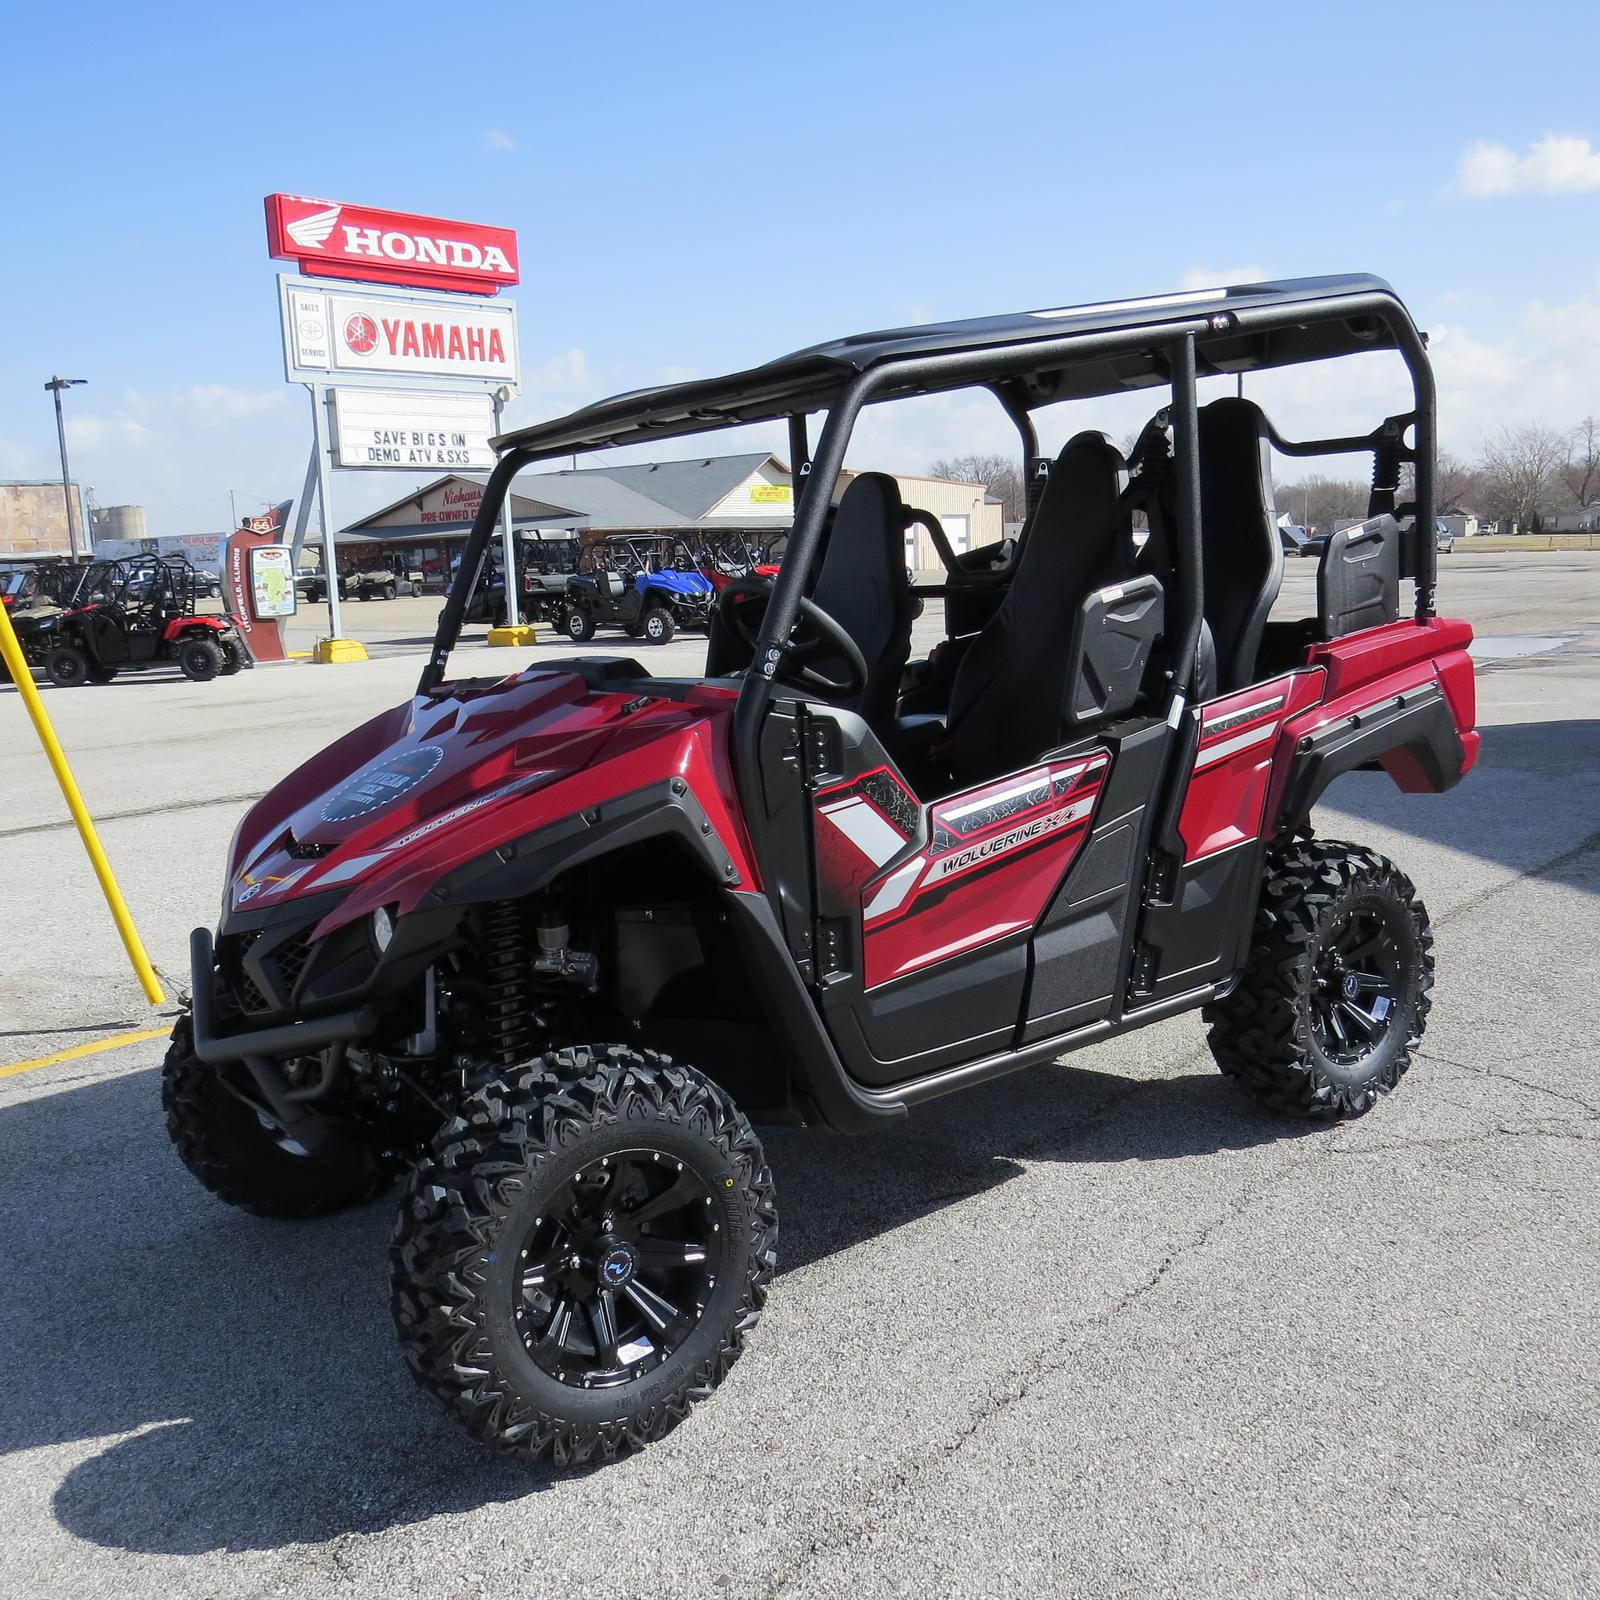 87f6761650b 2019 Yamaha Wolverine X4 for sale in Litchfield